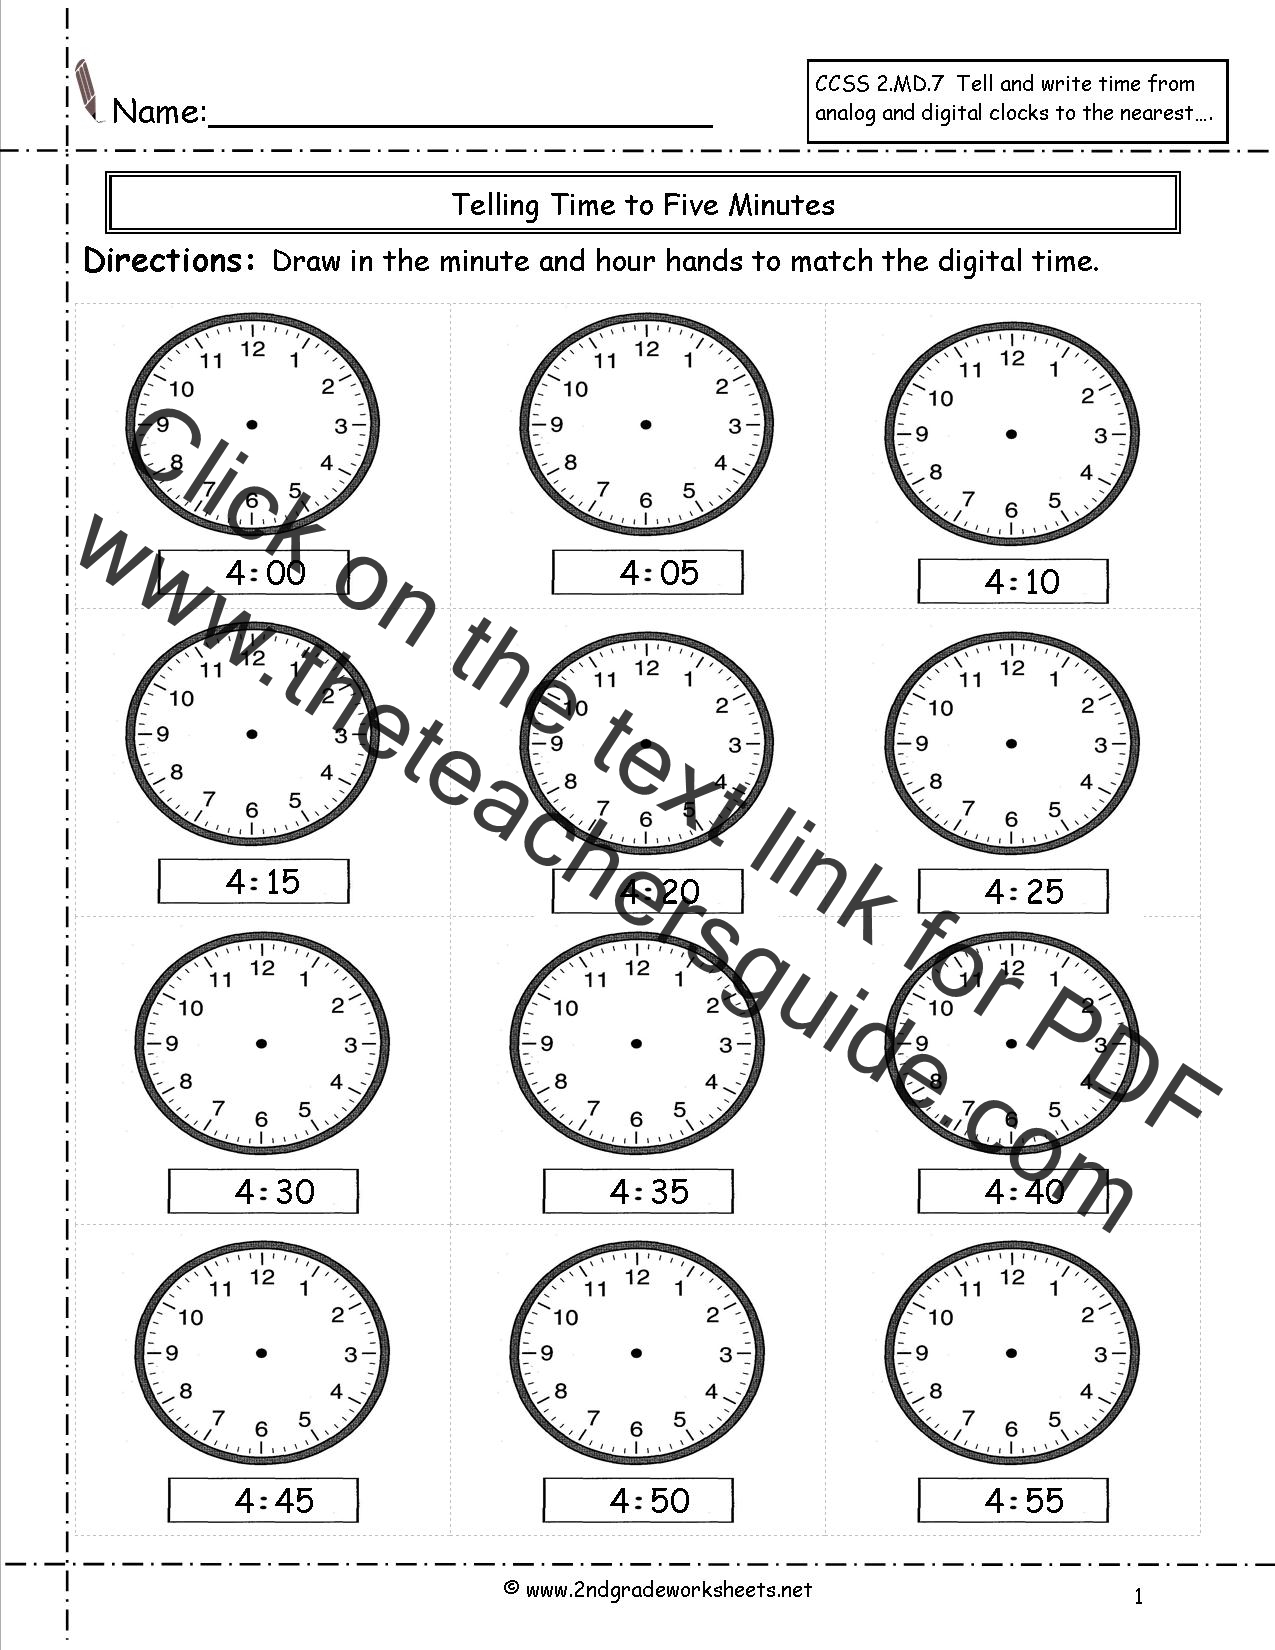 Worksheets Clock Worksheets Grade 2 telling and writing time worksheets worksheets